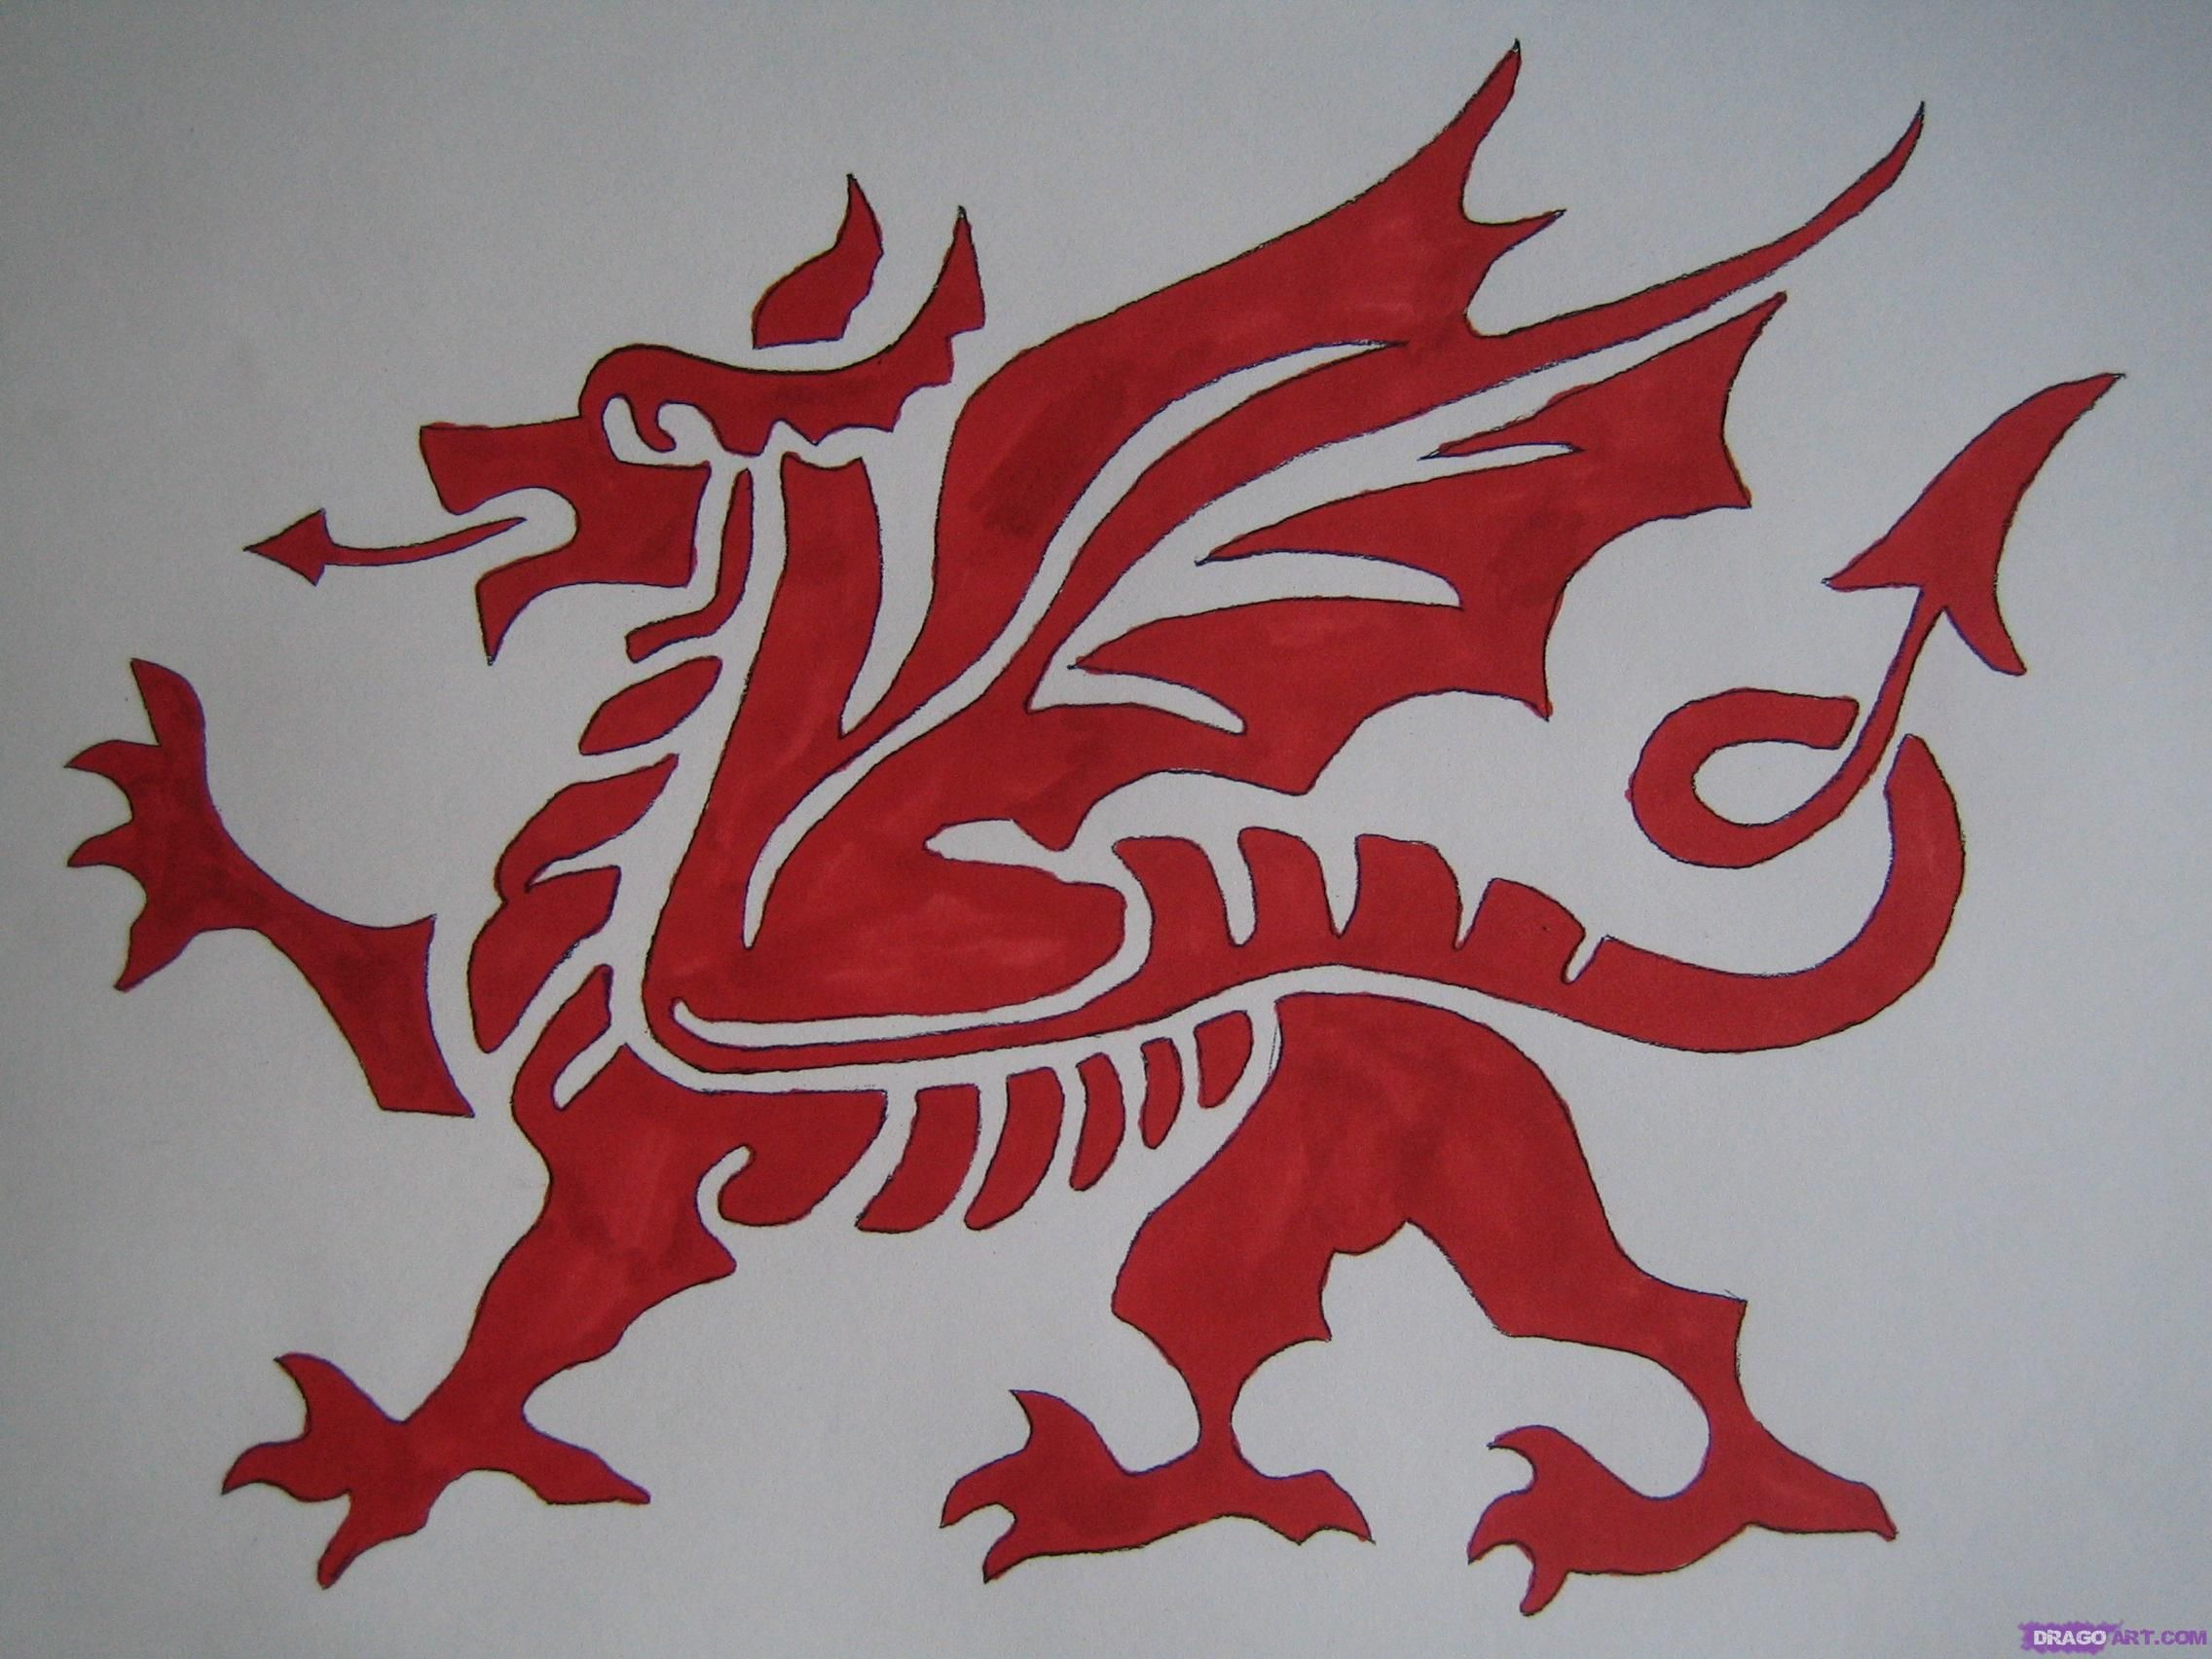 Welsh dragon tattoo designs - So I Ve Finally Chosen What Tattoo I Want It S Going To Be The Welsh Dragon In Red Obviously With Mae Hen Wlad Fy Nhadau The Land Of My Fathers